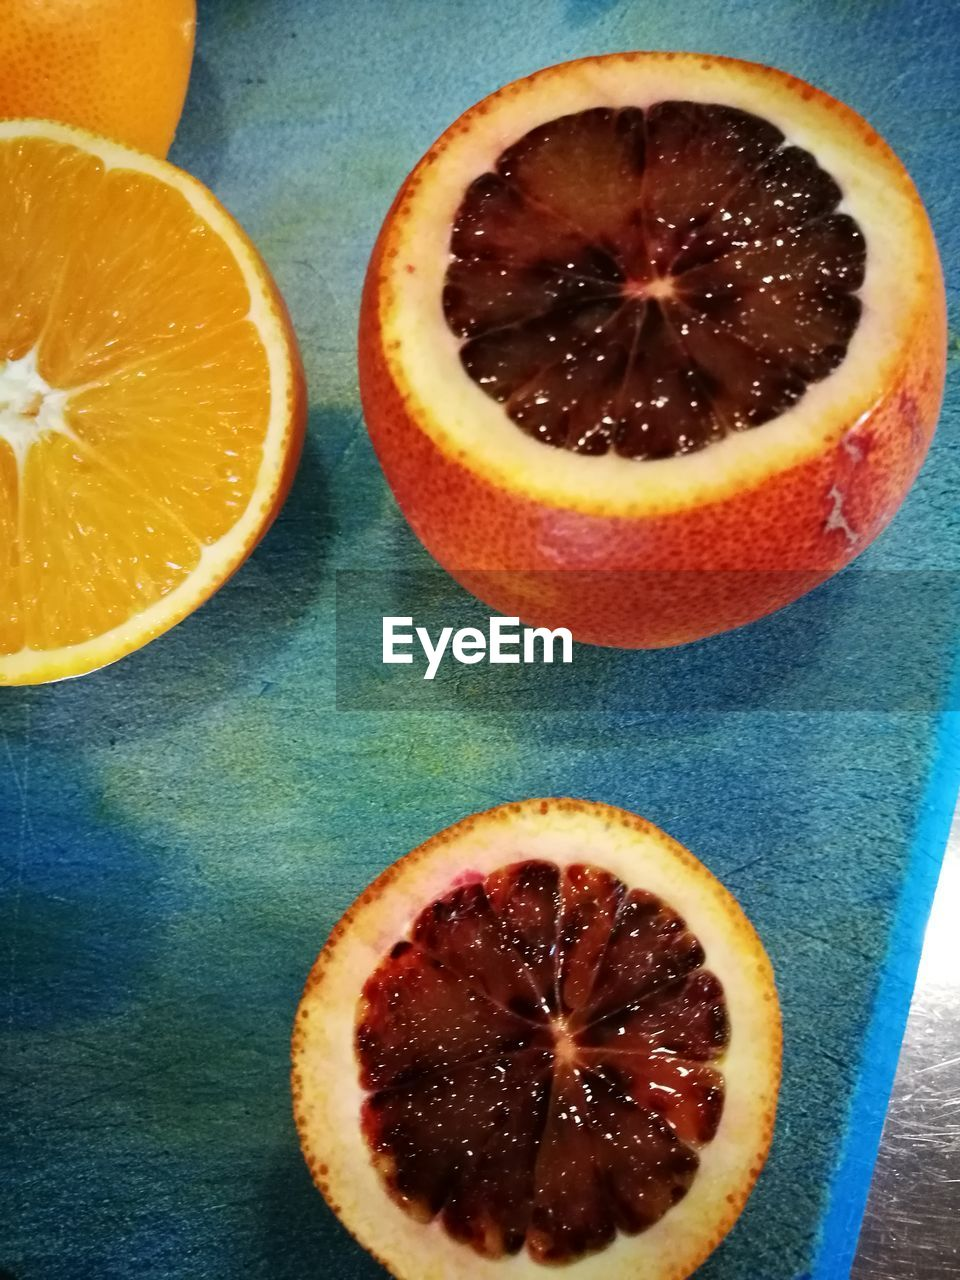 food and drink, orange - fruit, freshness, fruit, citrus fruit, food, indoors, table, slice, cross section, healthy eating, no people, sweet food, close-up, blood orange, day, ready-to-eat